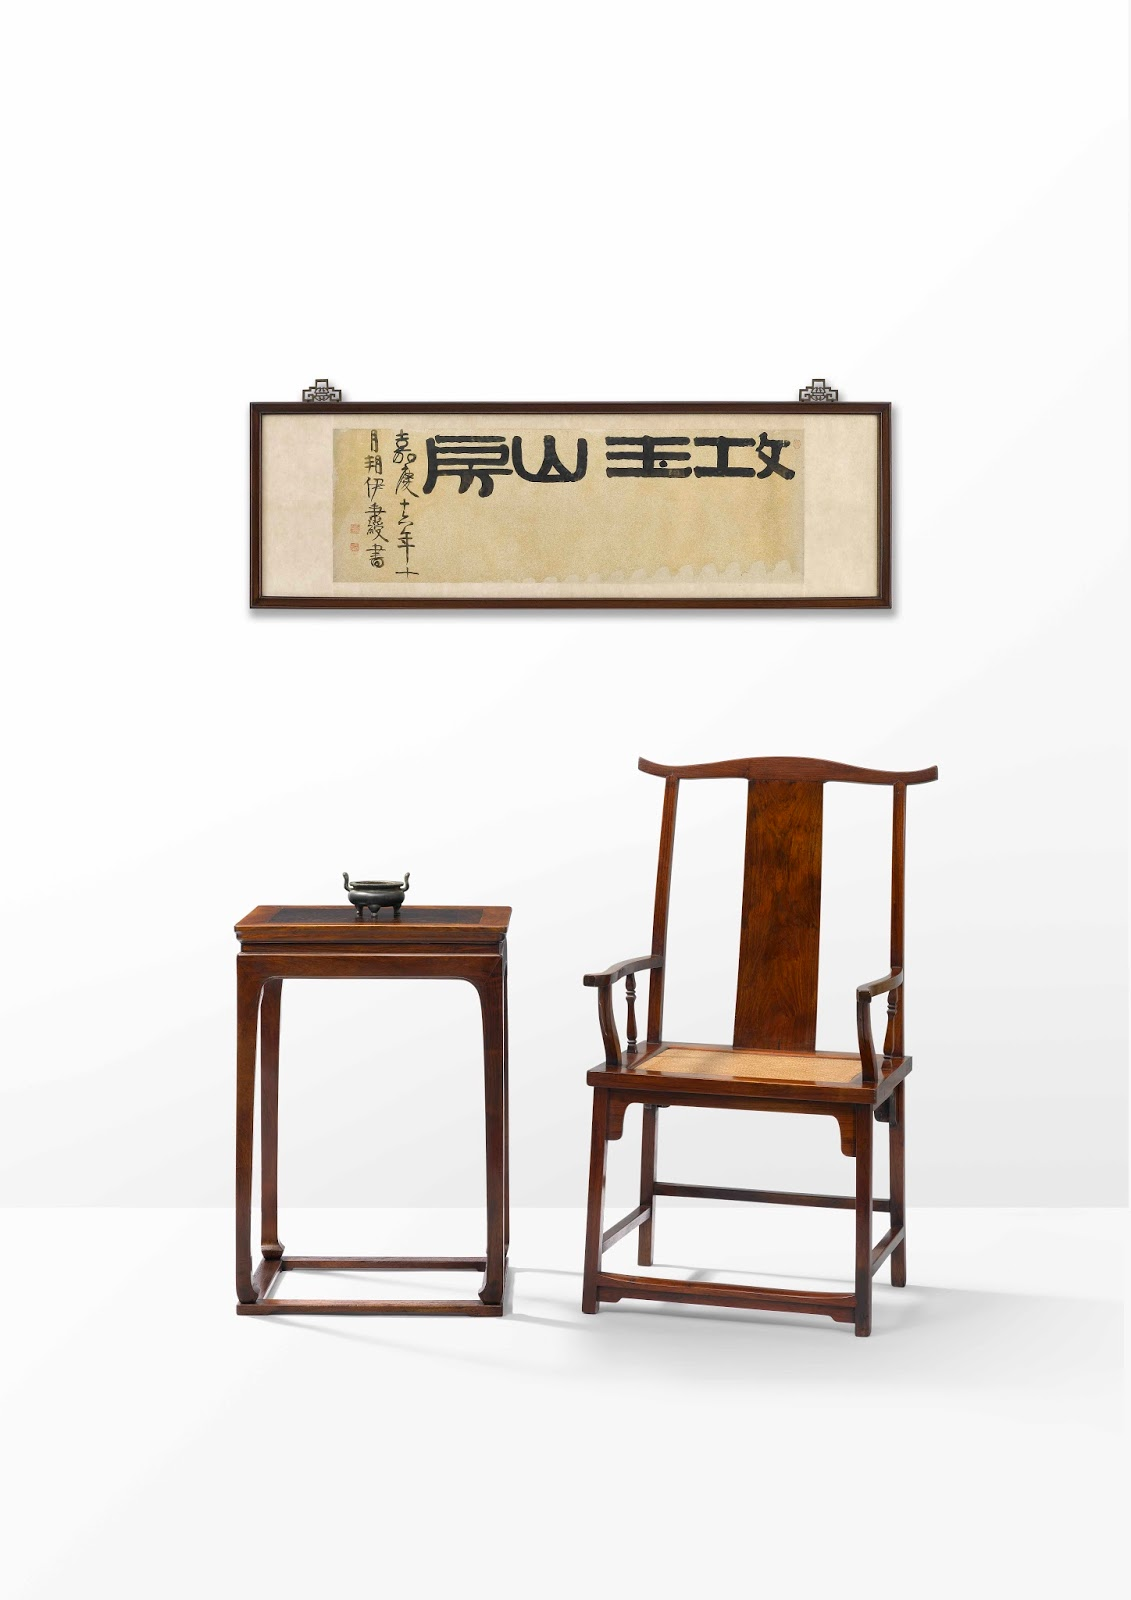 Exceptionnel WORLD CLASS MING FURNITURE EXHIBITION AT SOTHEBYu0027S HONG KONG FROM 14 AUGUST  TO 4 SEPTEMBER FROM DR S.Y YIP COLLECTION